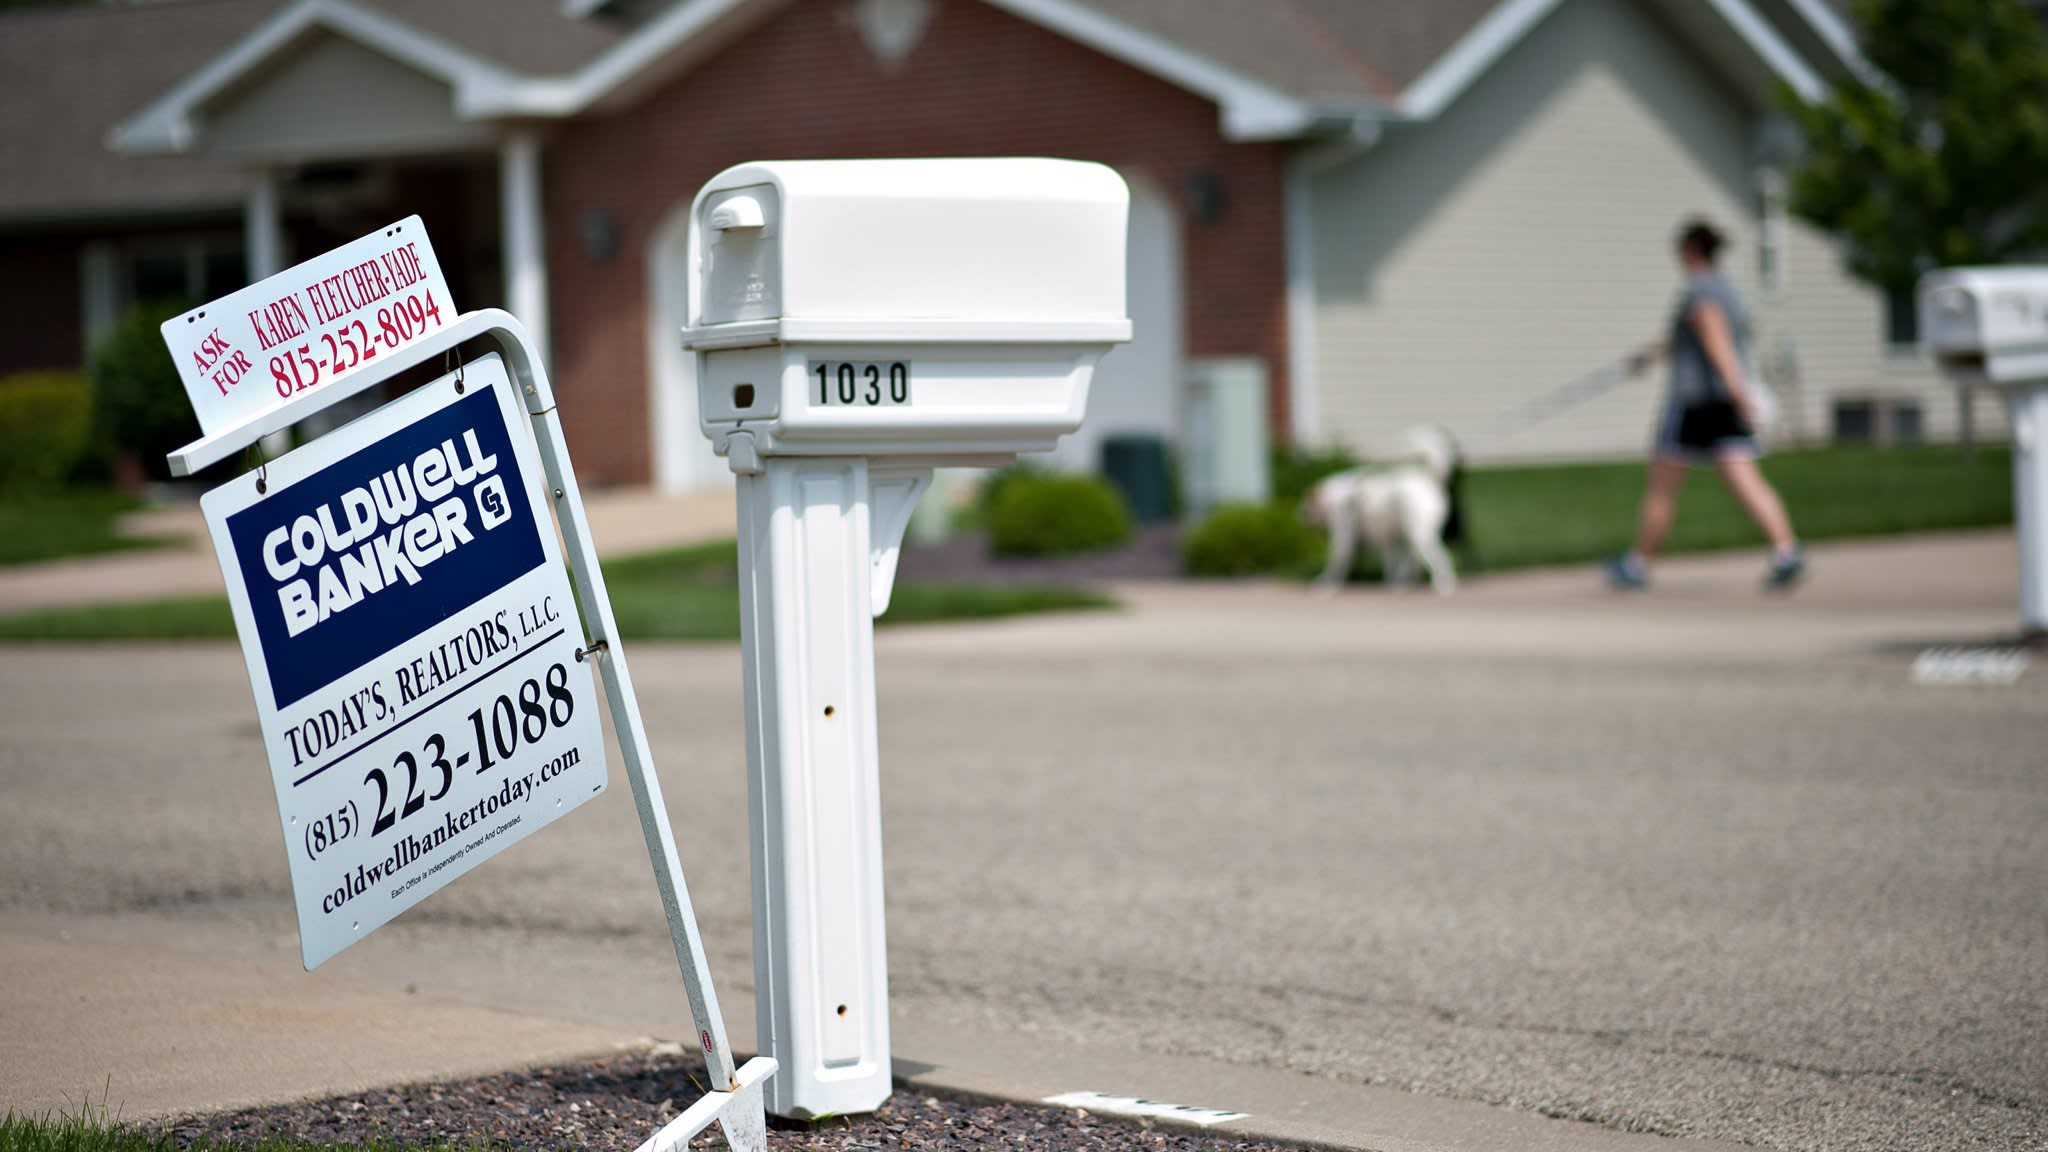 Machines switch to disrupting property valuers